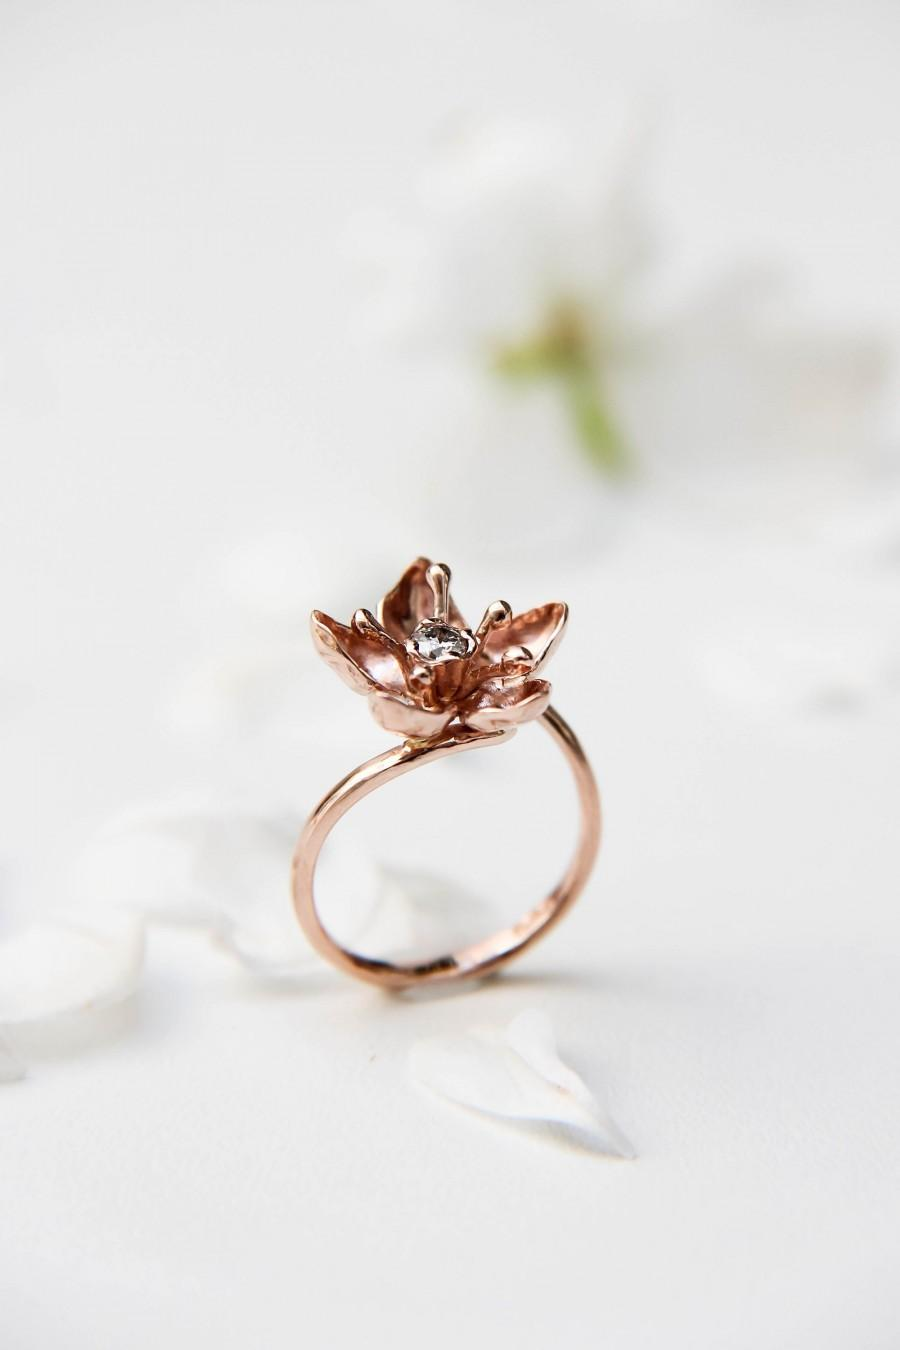 Mariage - Apple blossom rose gold ring for engagement, Unique diamond ring, Flower women ring, Proposal delicate ring, Romantic love ring gift